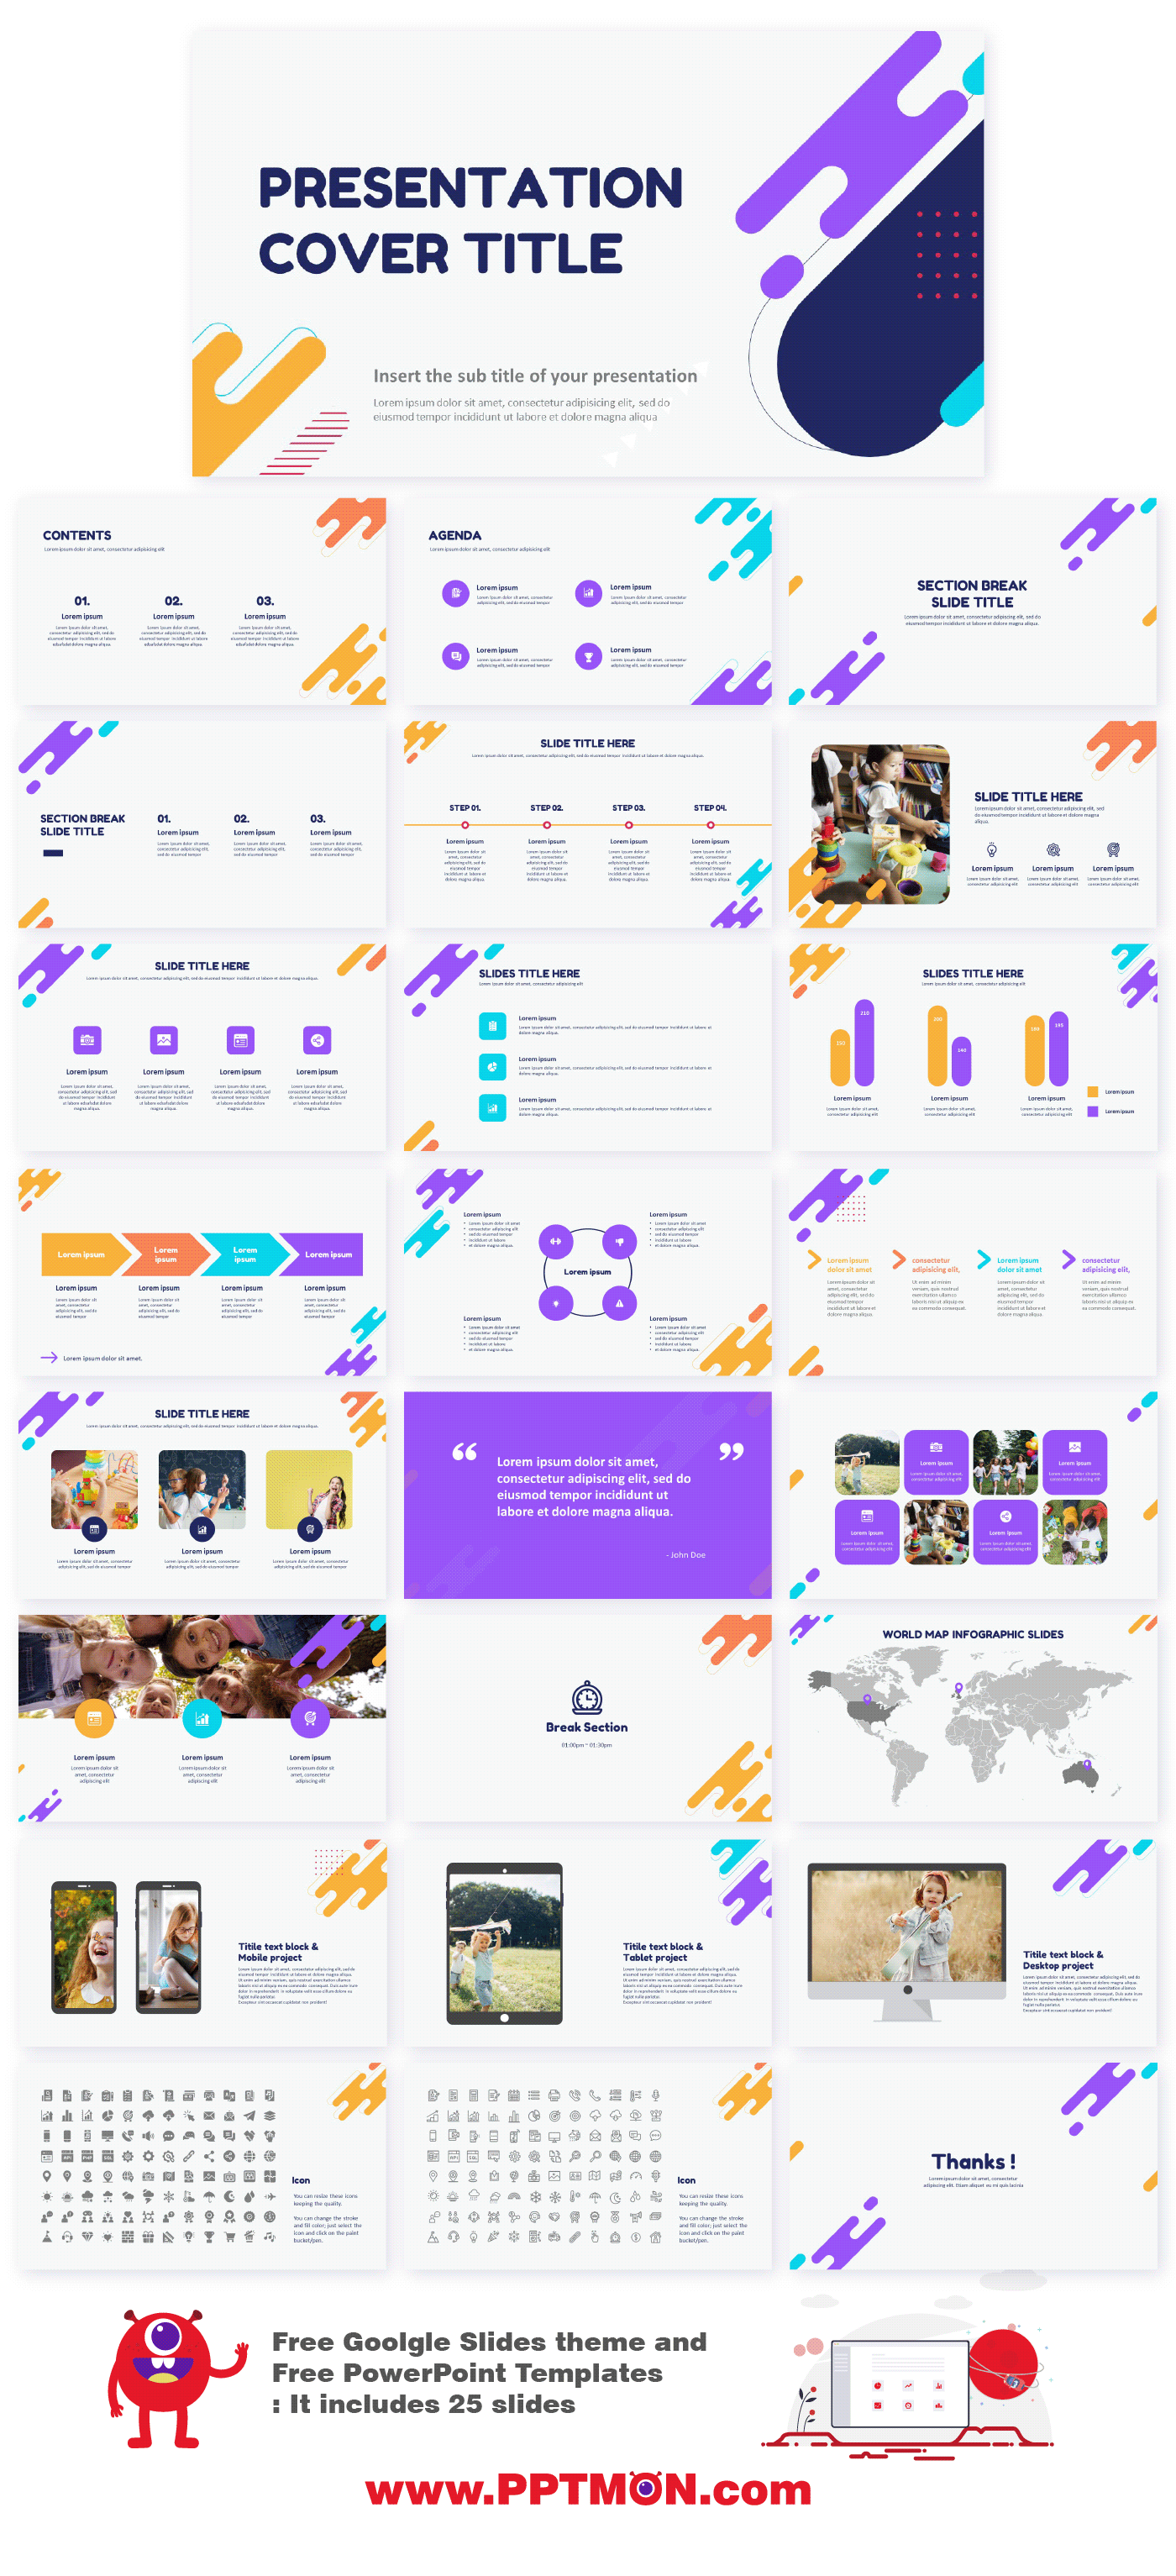 Flat Free Power Point Template Google Slides Theme On Behance In 2020 Presentation Template Free Powerpoint Template Free Powerpoint Templates